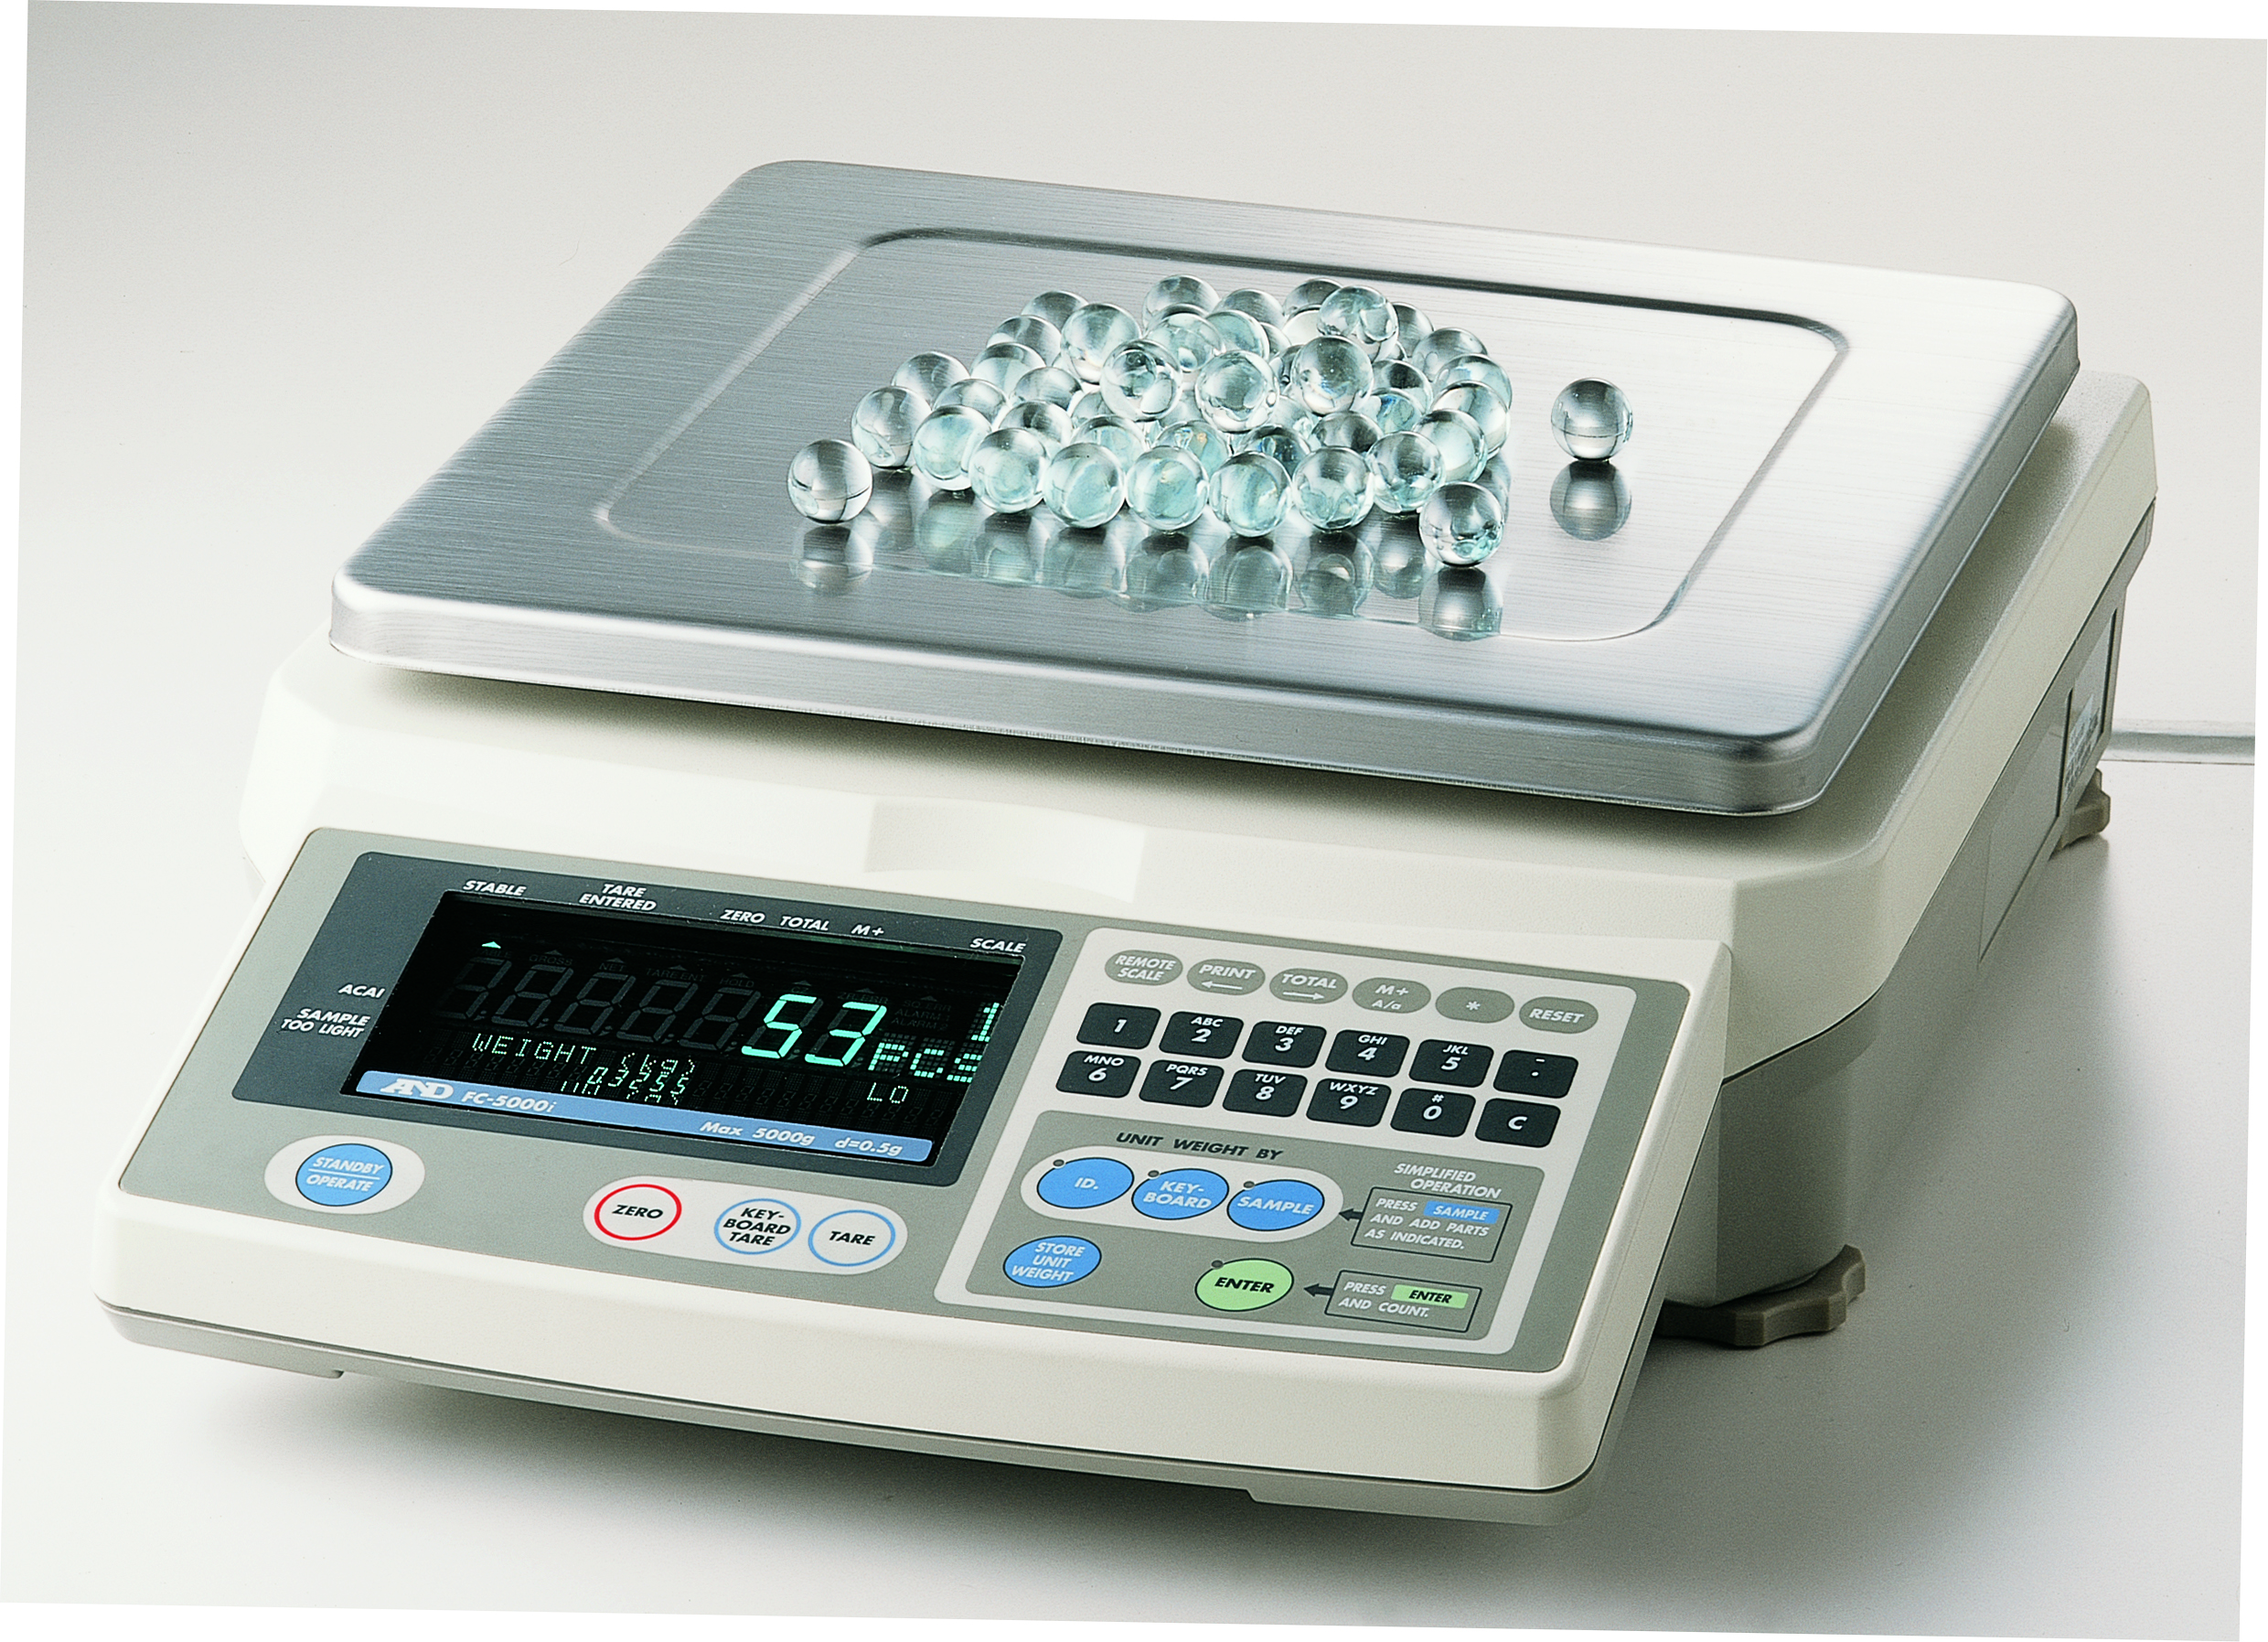 A&D FC-i / FC-Si SERIES COUNTING SCALES DESIGNED FOR EXTREME COUNT ACCURACY